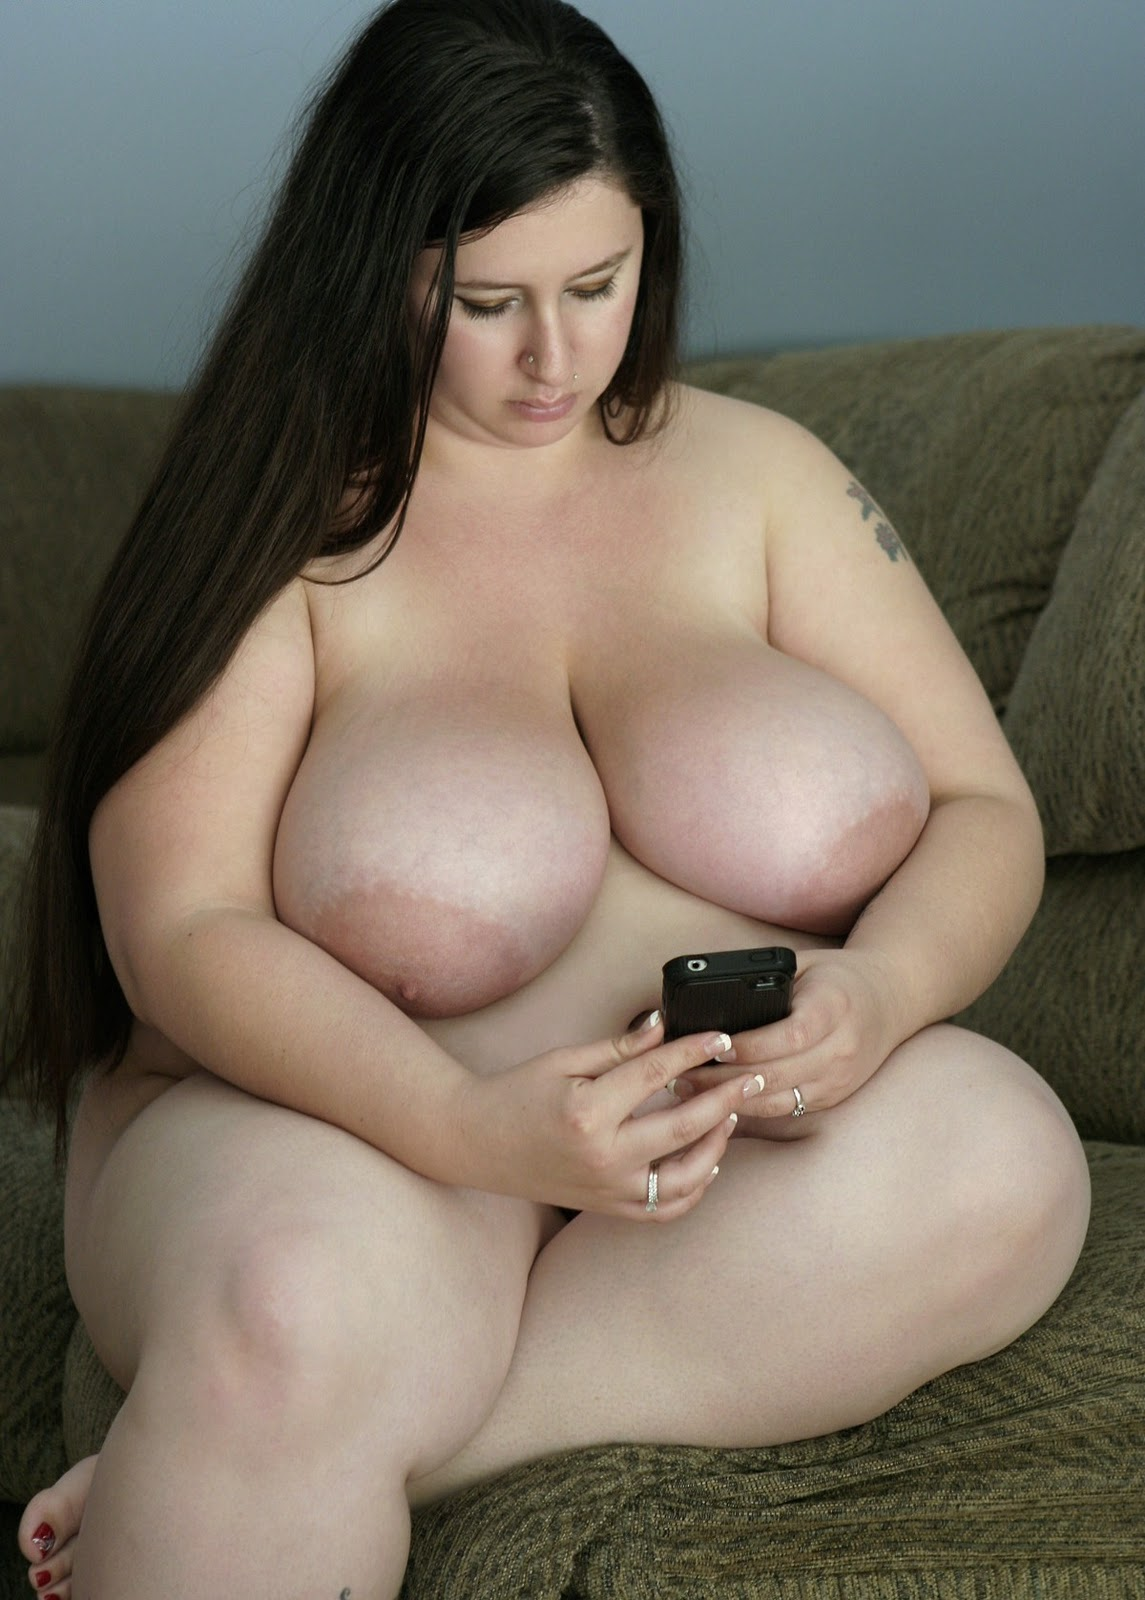 from Kase nude pics of chunky girls